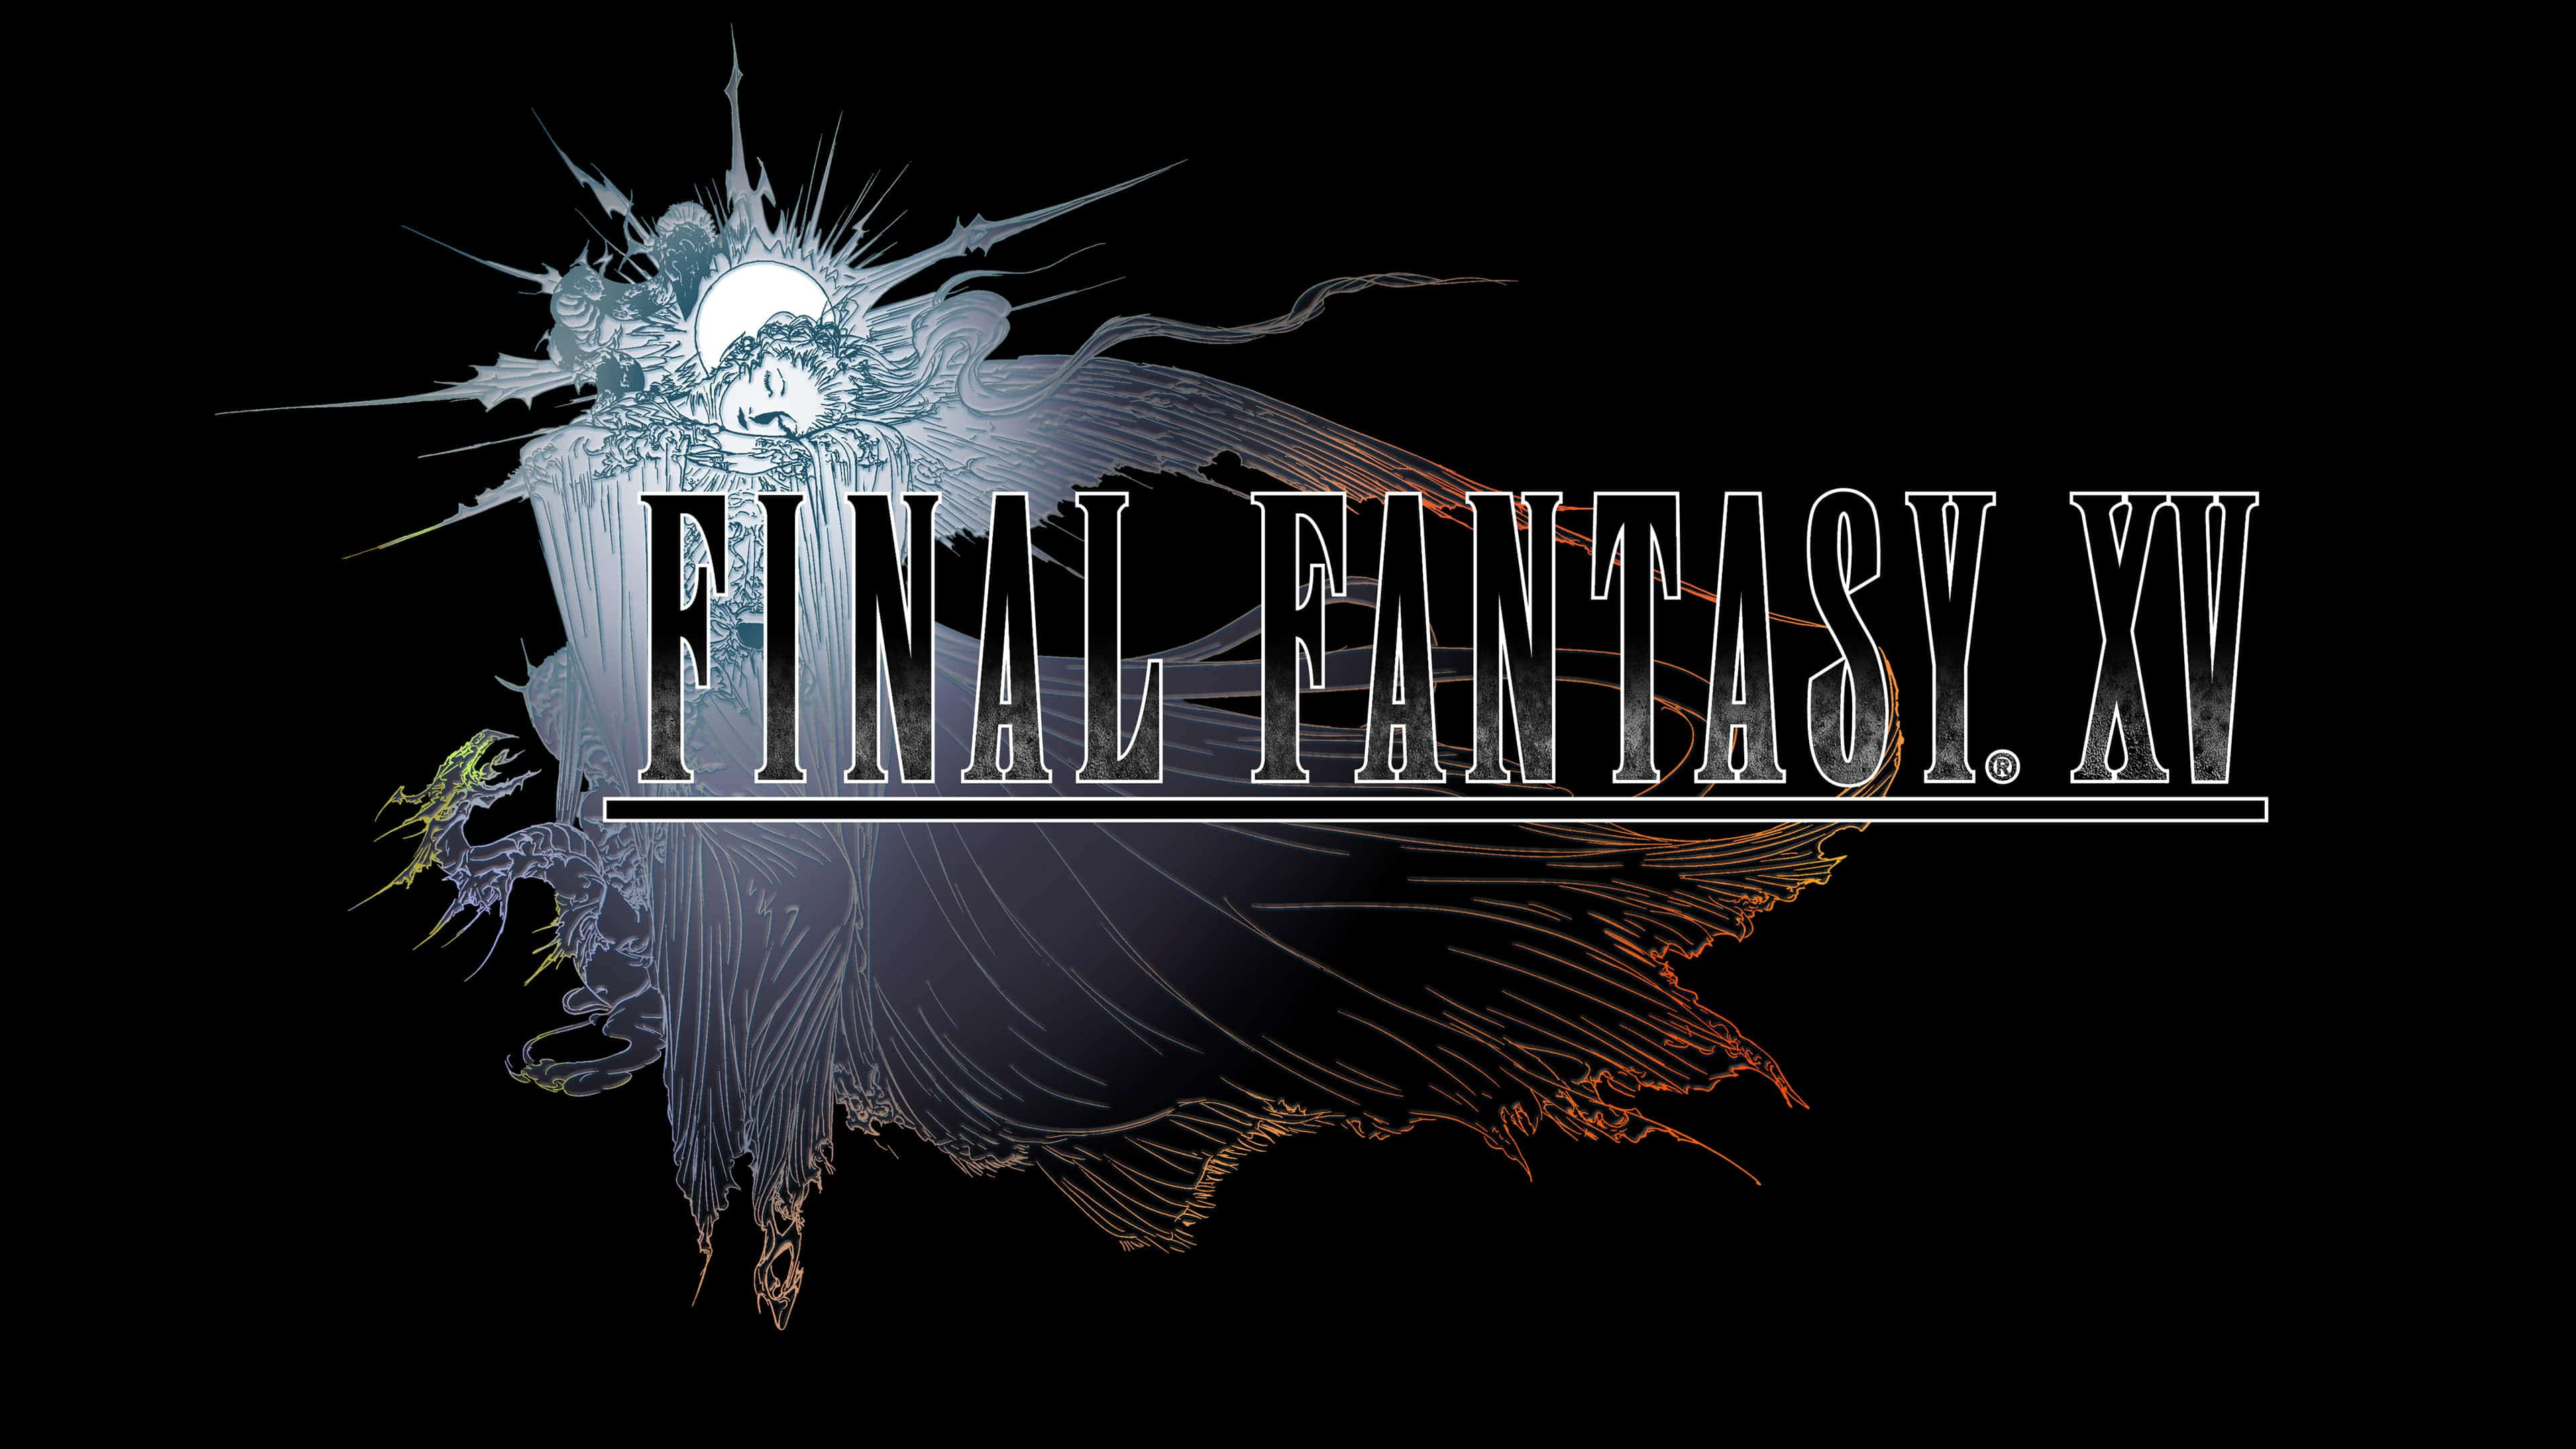 final fantasy xv logo uhd 4k wallpaper